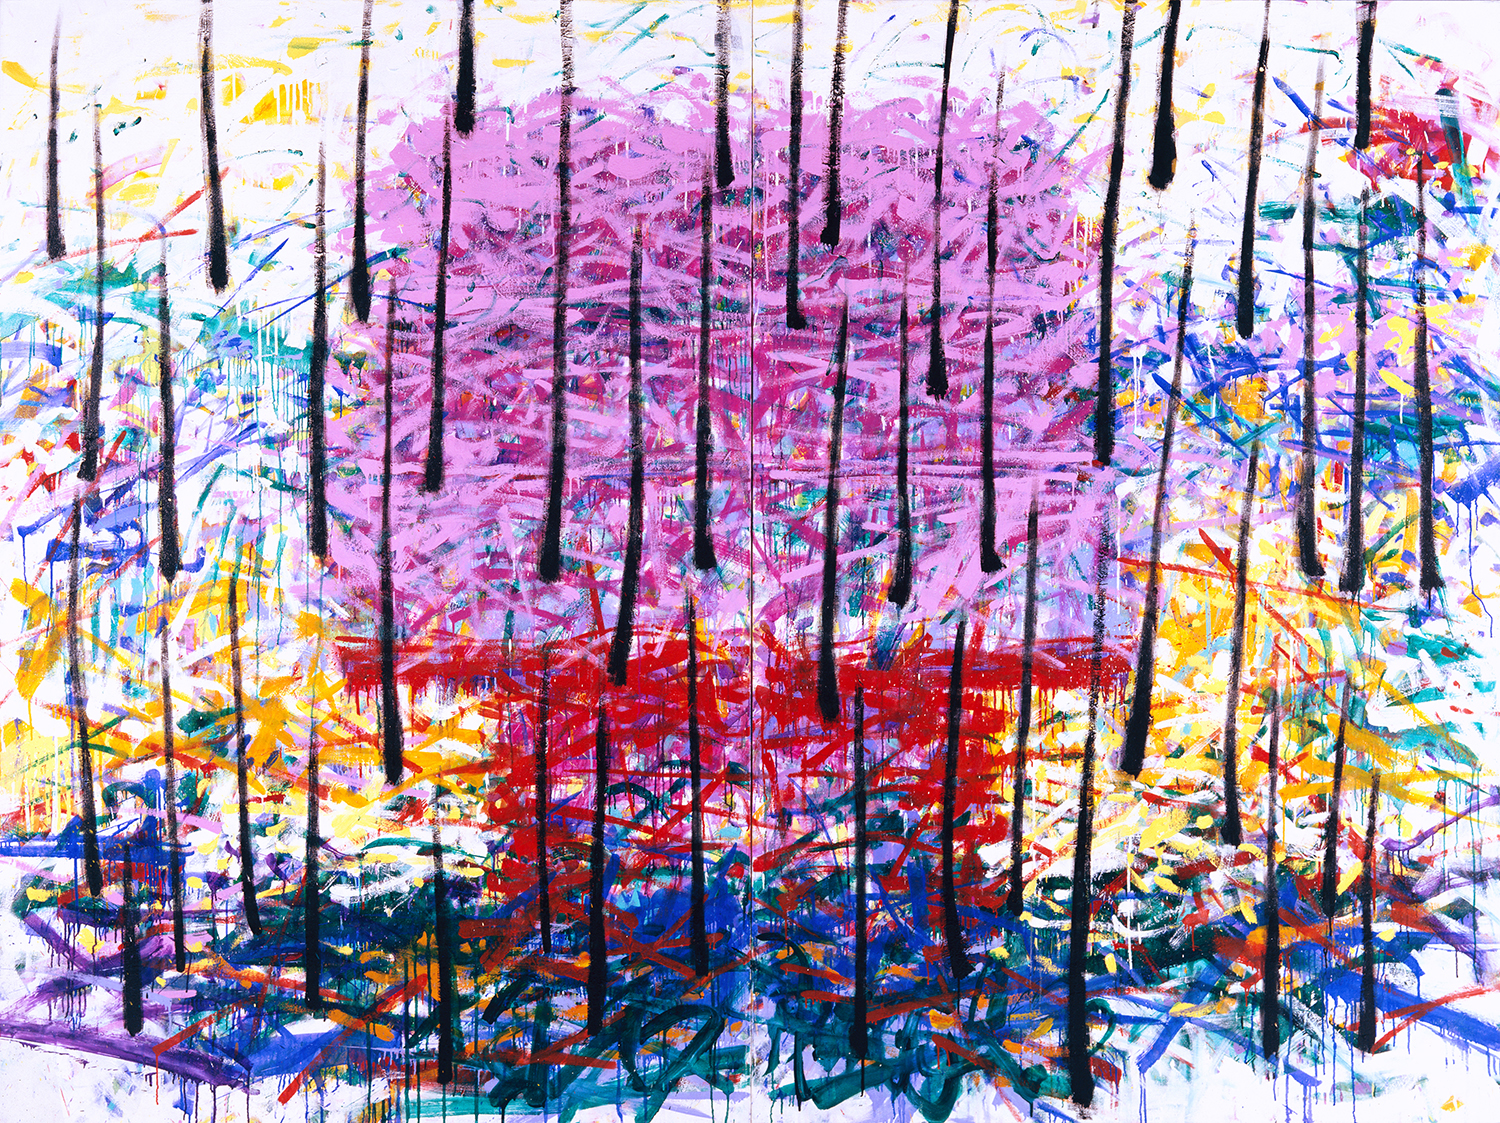 Late Afternoon Dog House Cathedral In The Rain   oil and enamel on canvas   96″ x 128″   1993